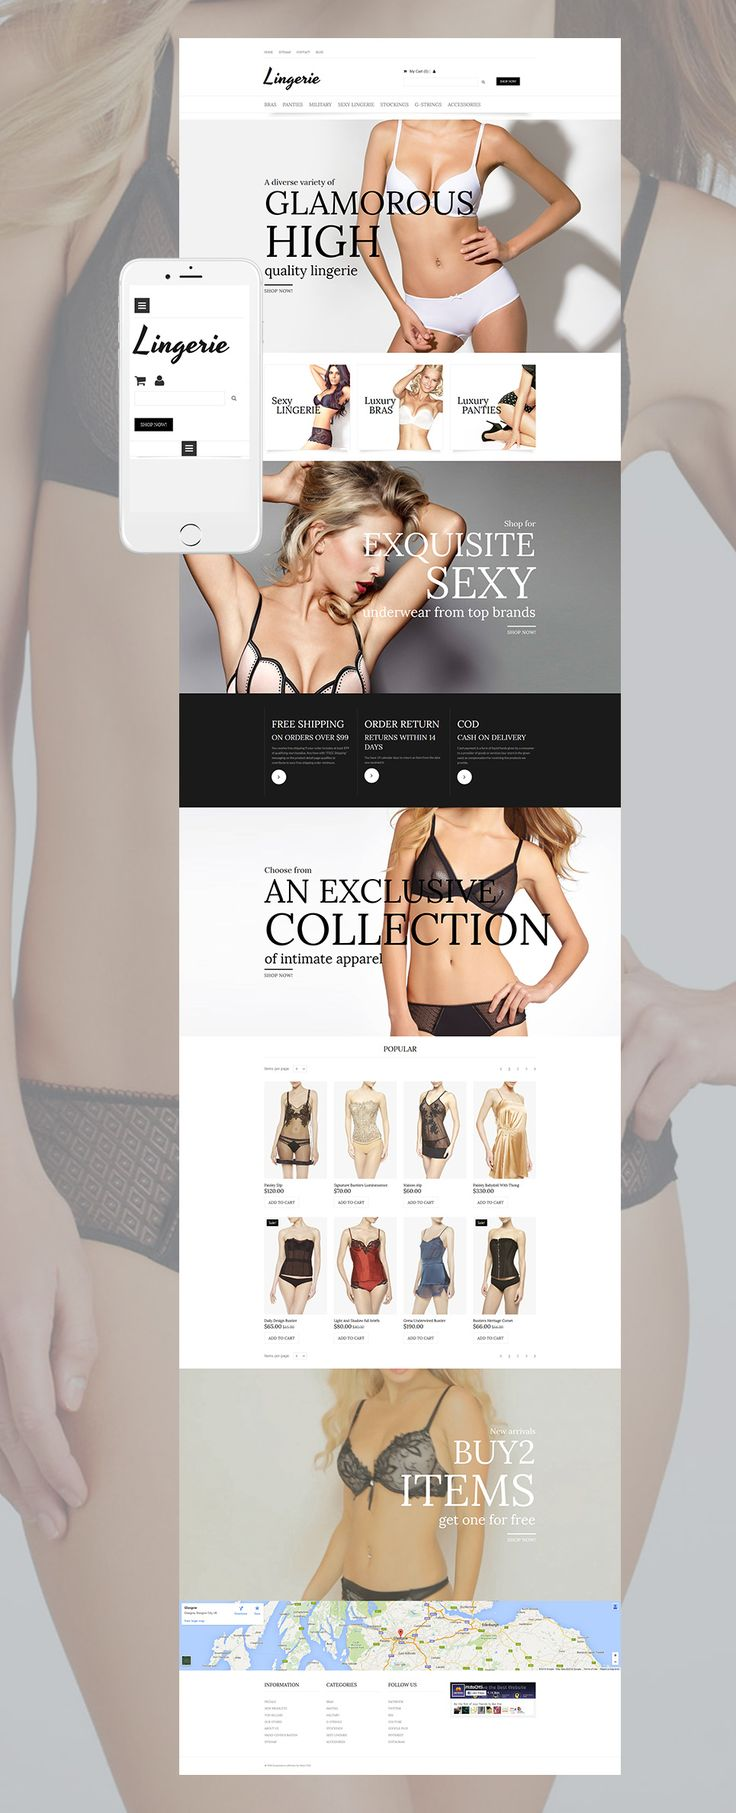 #Lingerie website design to start own business #online. All tools that may be useful are included into the website editor. Payment options, product catalog, statistics, etc. #estore #clothes